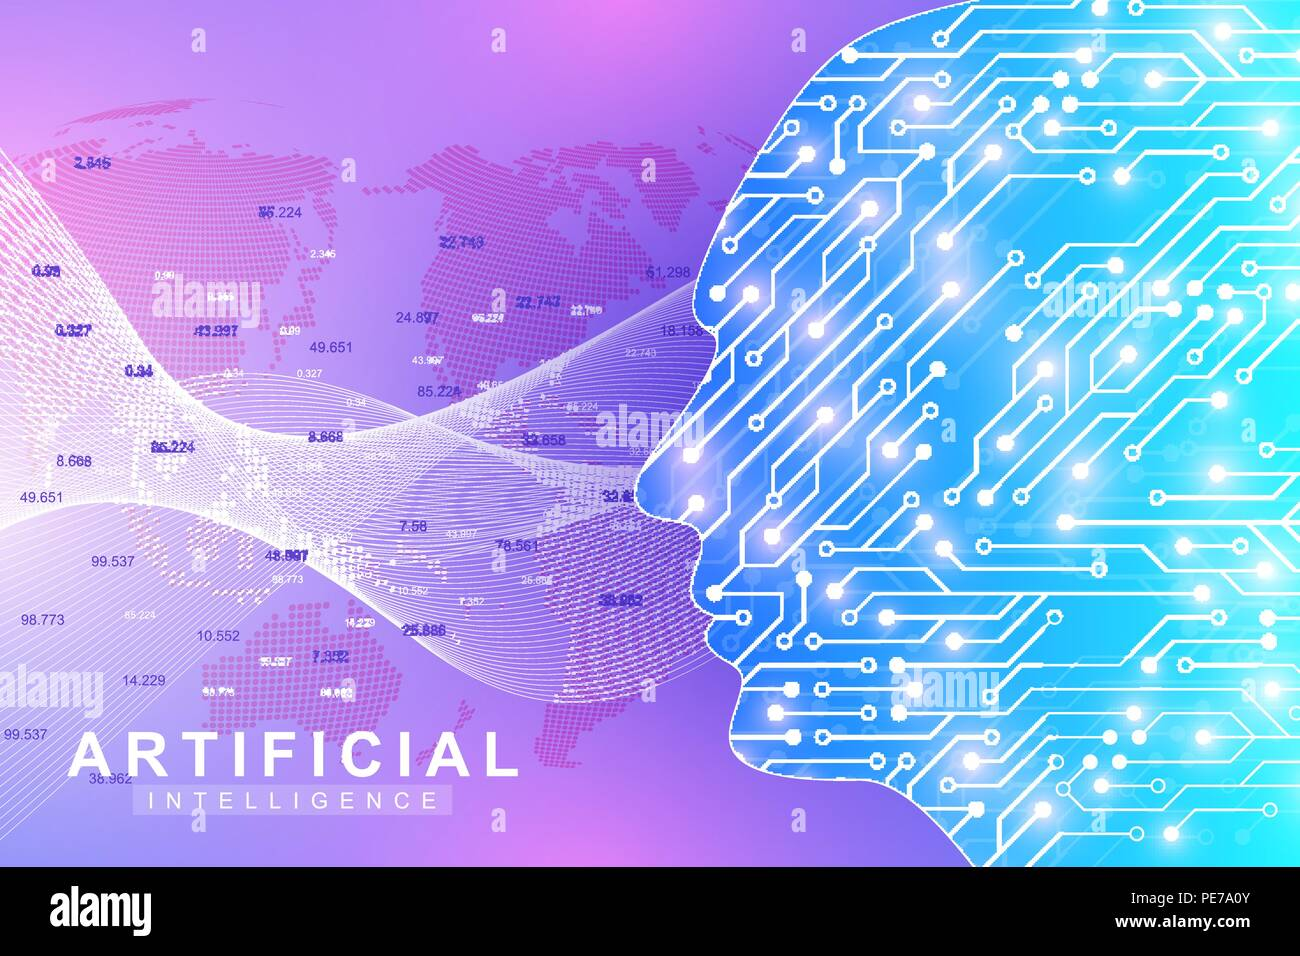 Futuristic Artificial Intelligence and Machine Learning Concept. Human Big Data Visualization. Wave Flow Communication, Scientific vector illustration. Stock Vector